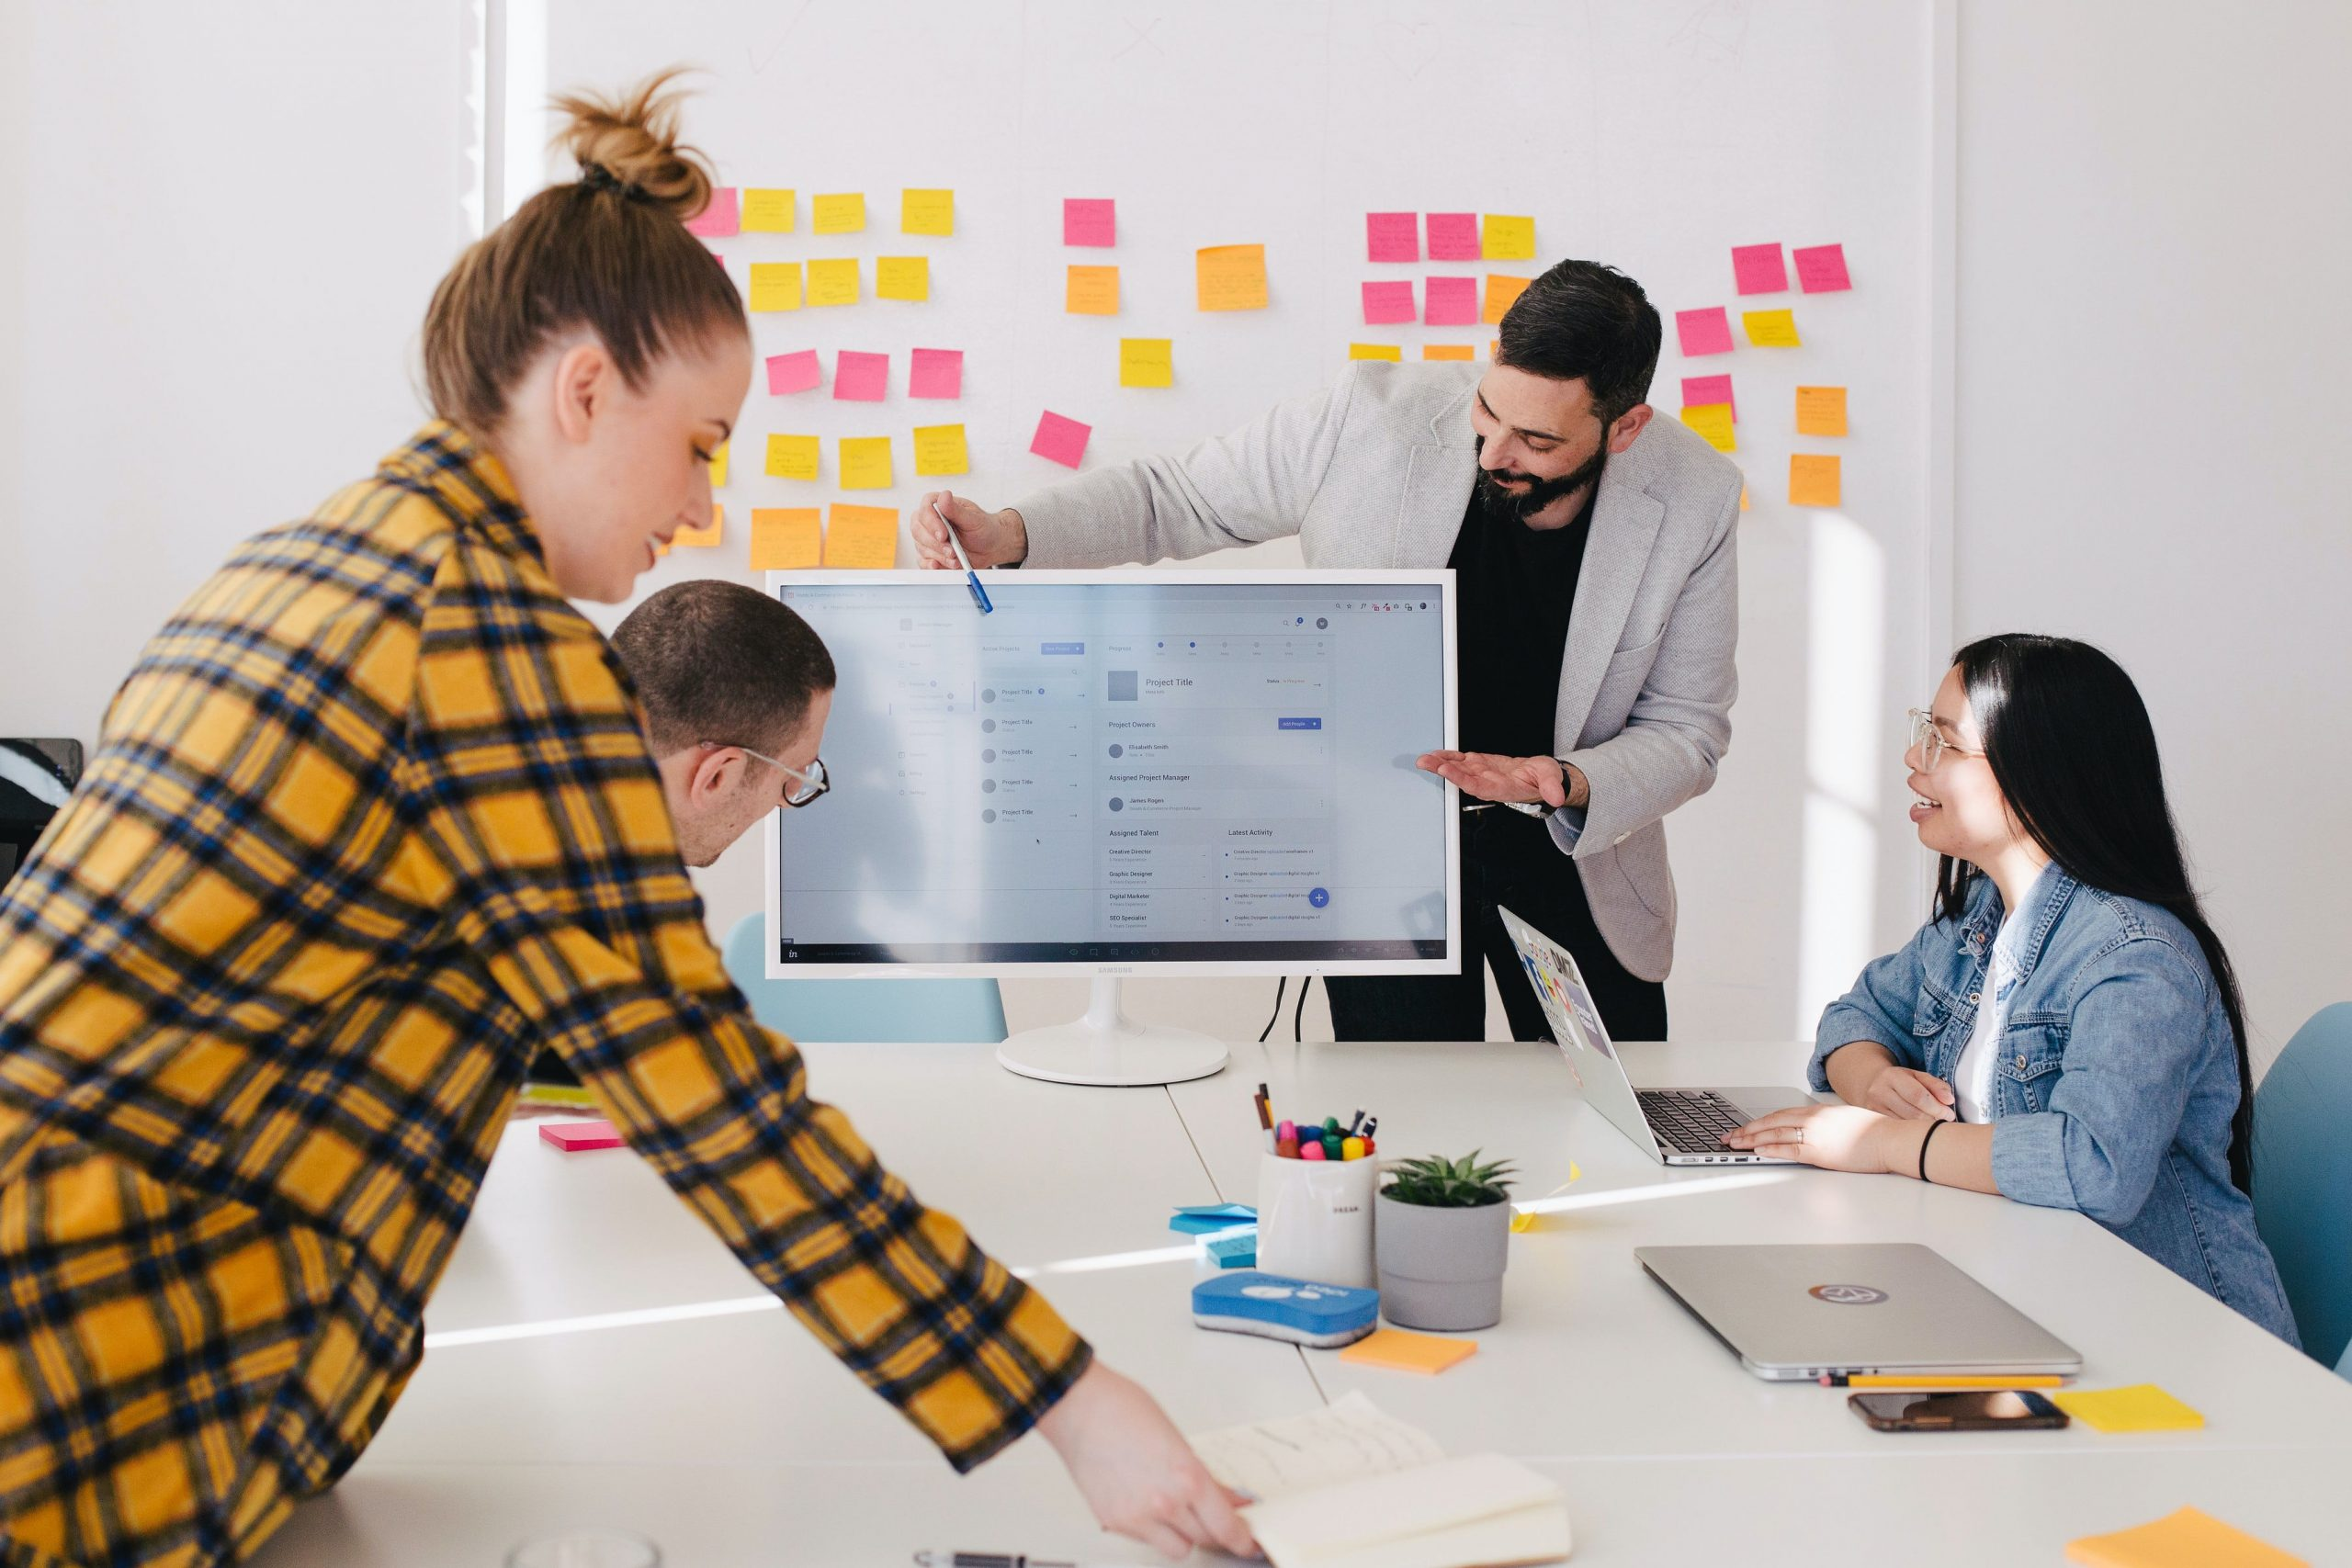 in-house agency working together to a common goal